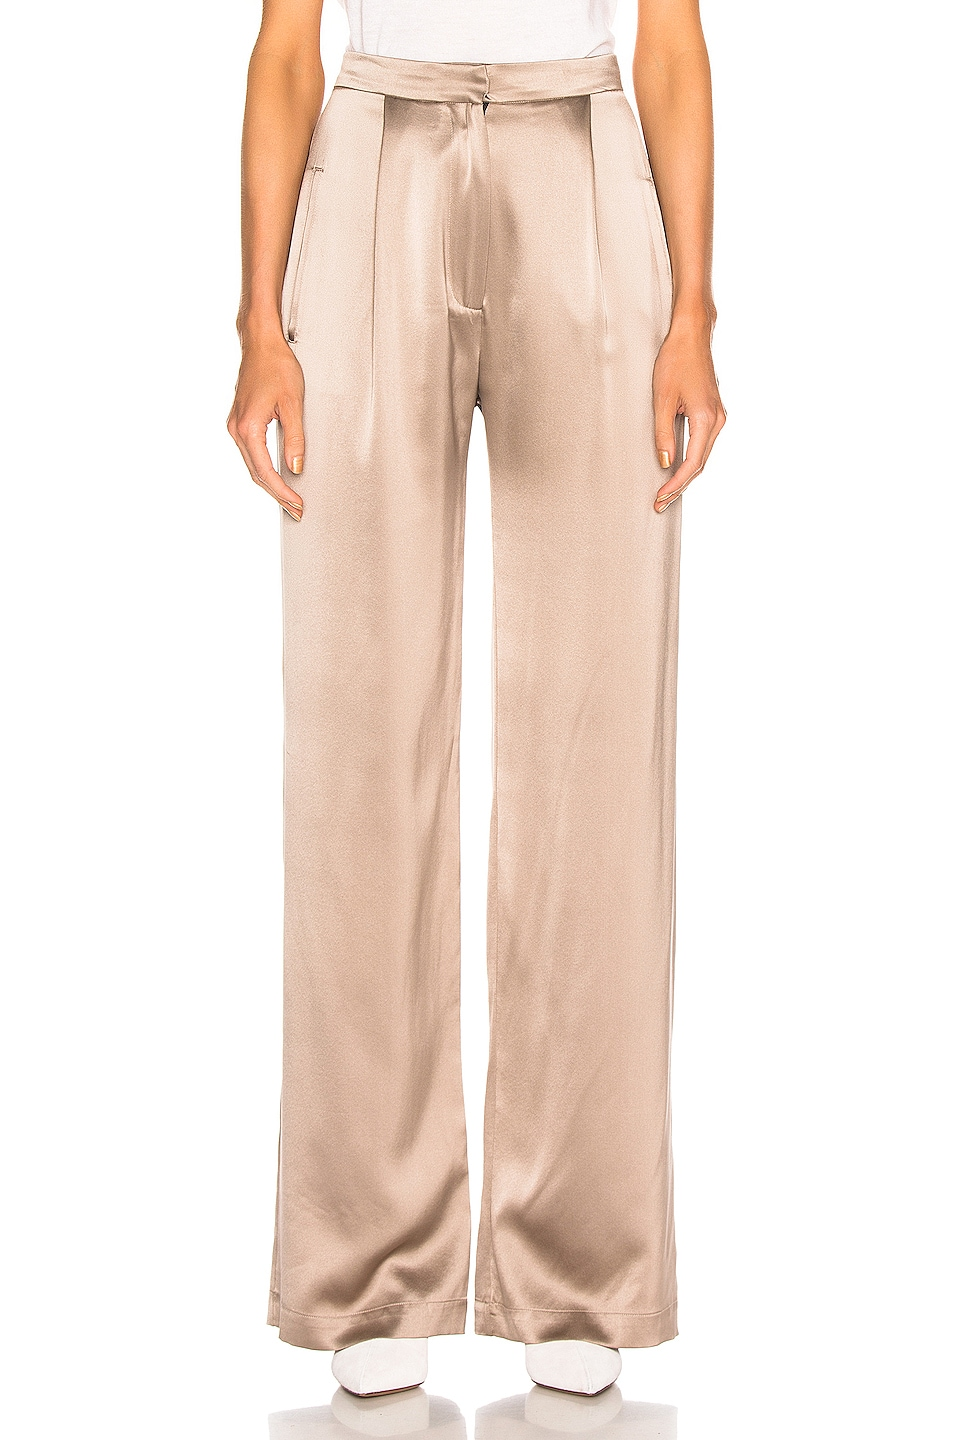 Image 1 of SABLYN Sable Pant in Taupe